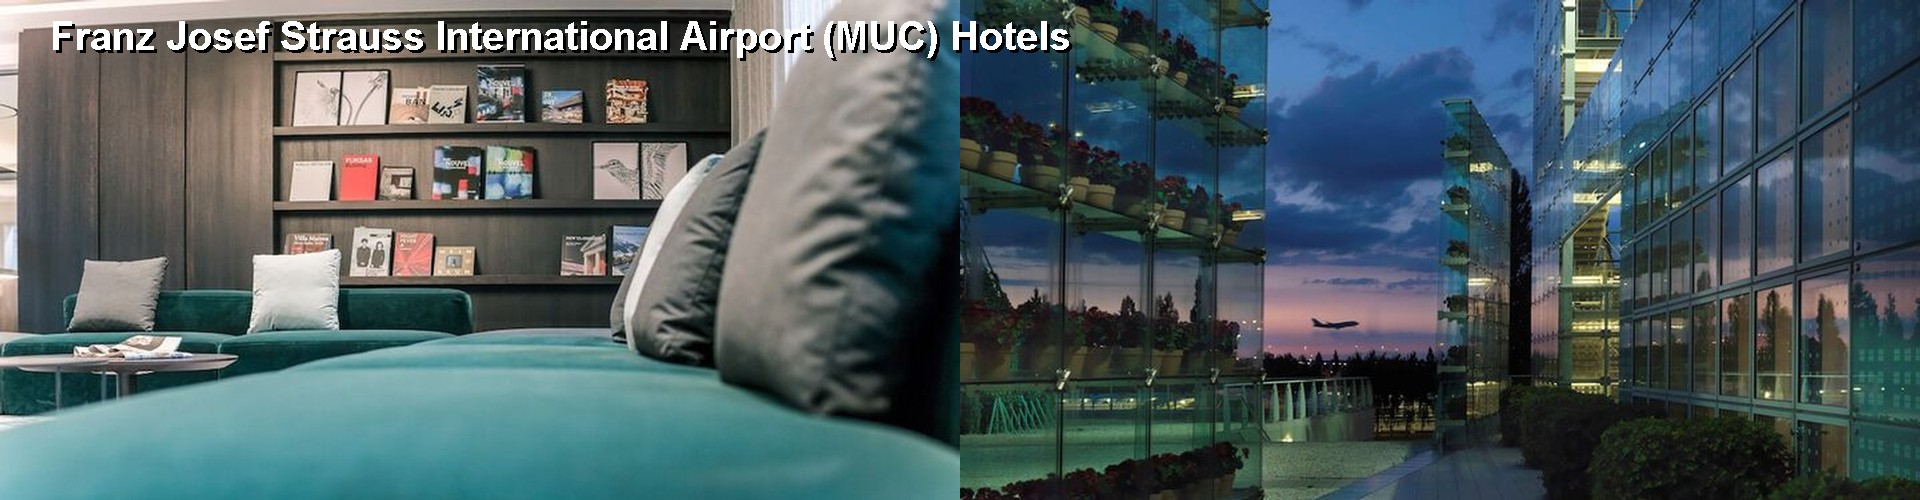 5 Best Hotels near Franz Josef Strauss International Airport (MUC)